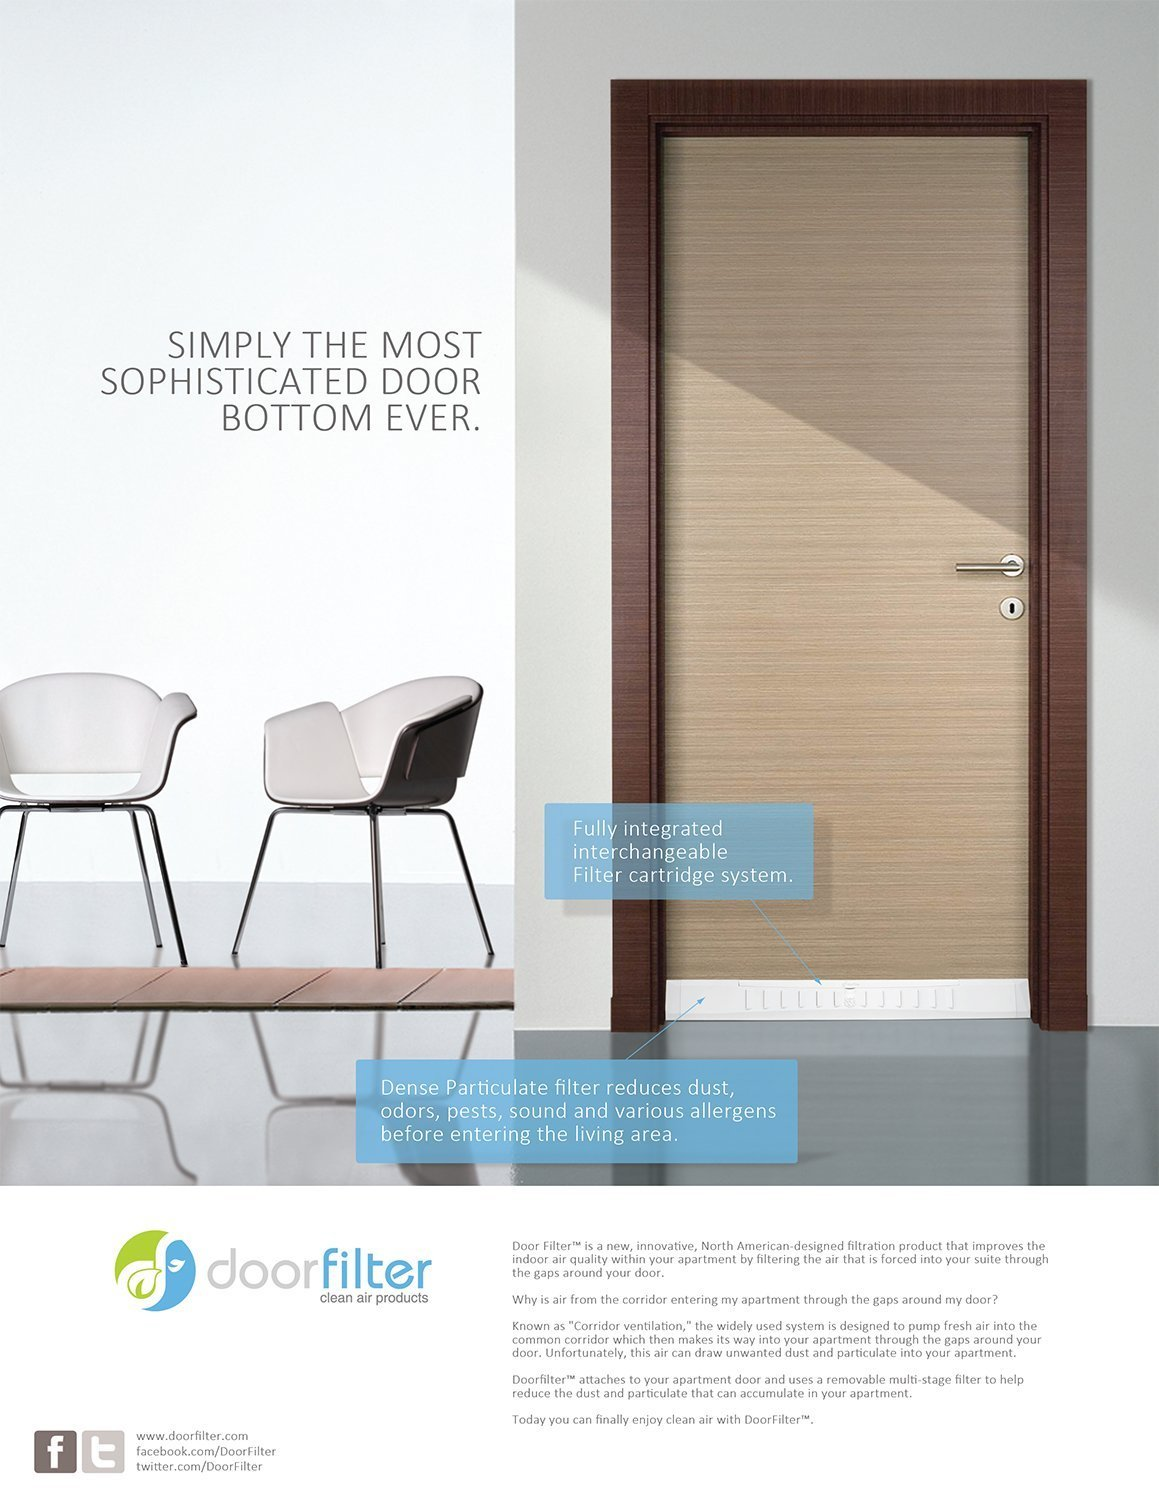 Door Filter Home Air Filter For Doorways And Entryways, White     Amazon.com